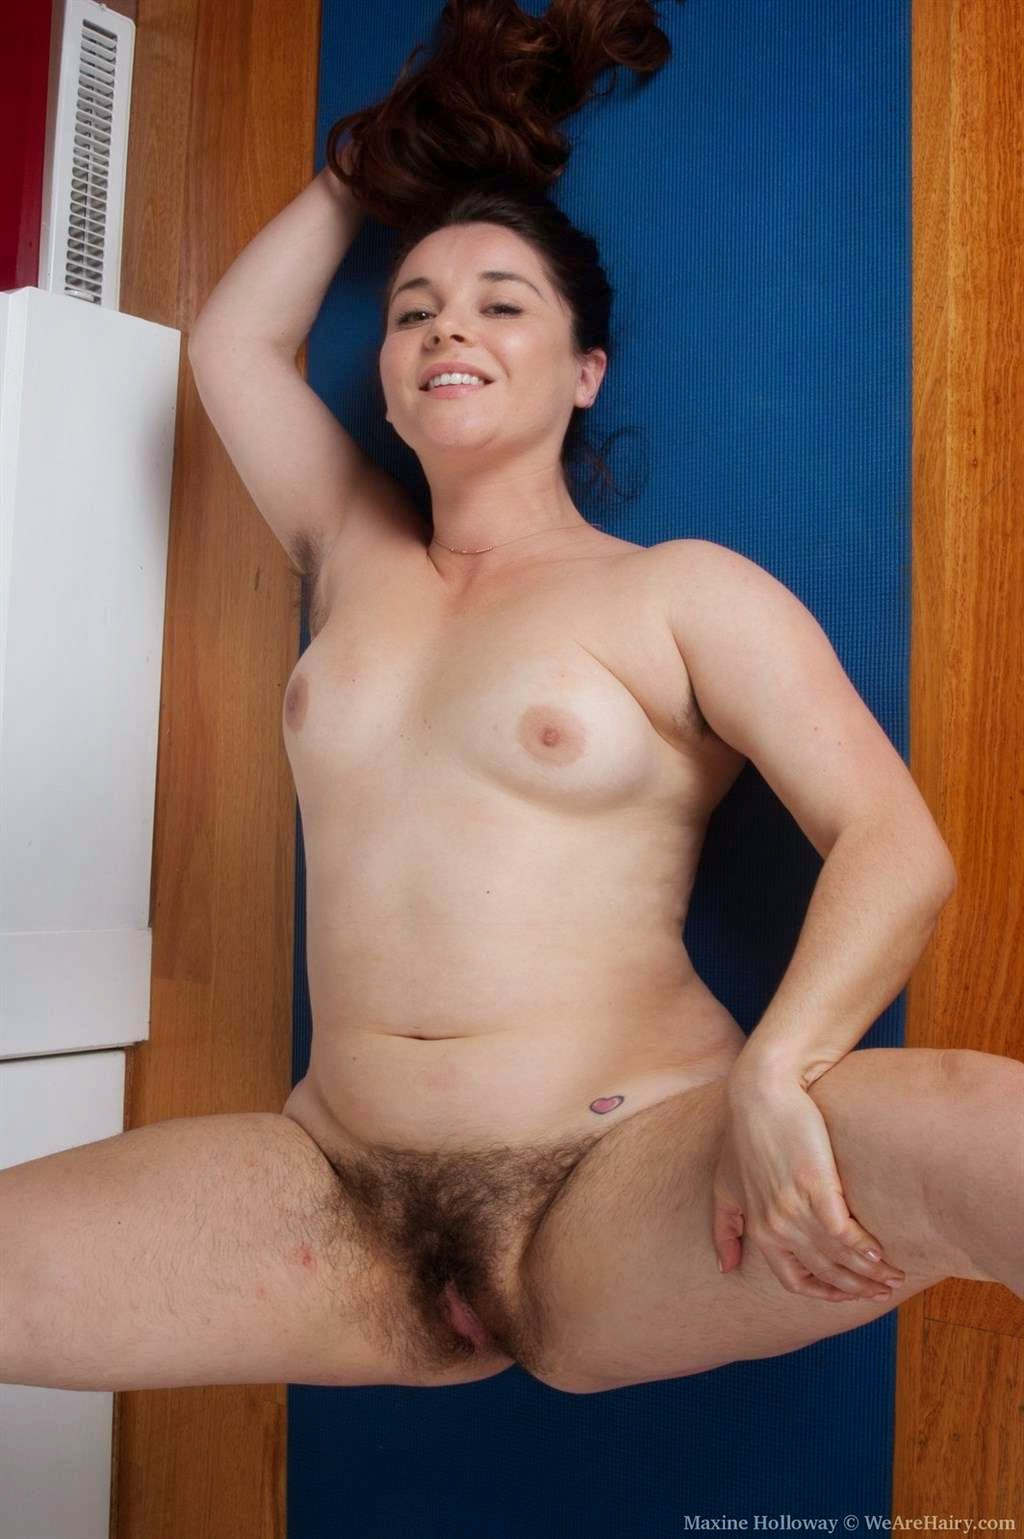 Granny Mature And Milf Hairy Mature Armpits And Hair -5162